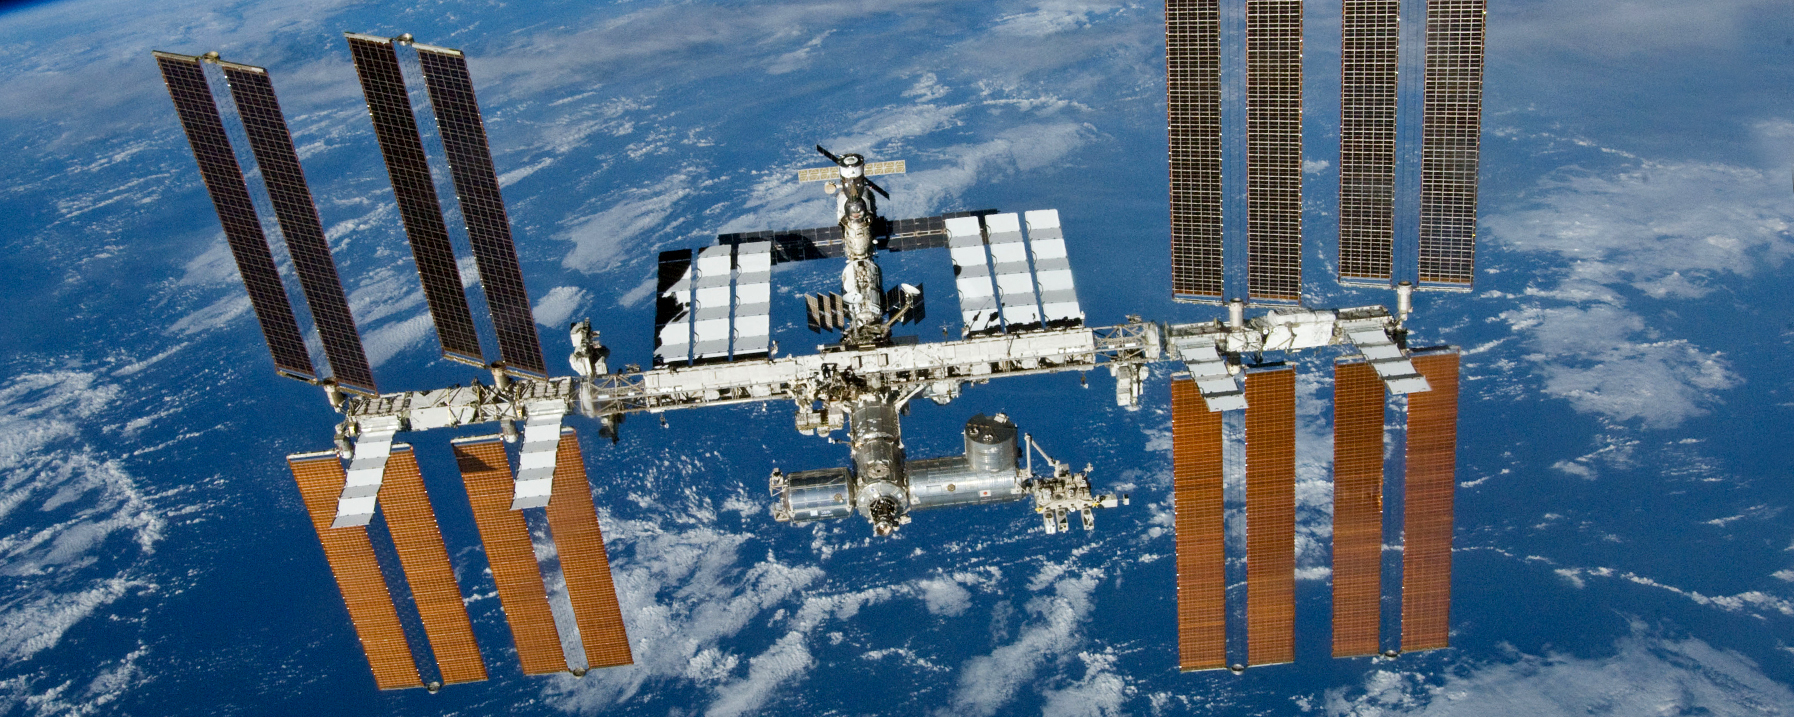 essay on the international space station Live video from the international space station includes internal views when the crew is on-duty and earth views at other times the video is accompanied by audio of conversations between the crew and mission control.